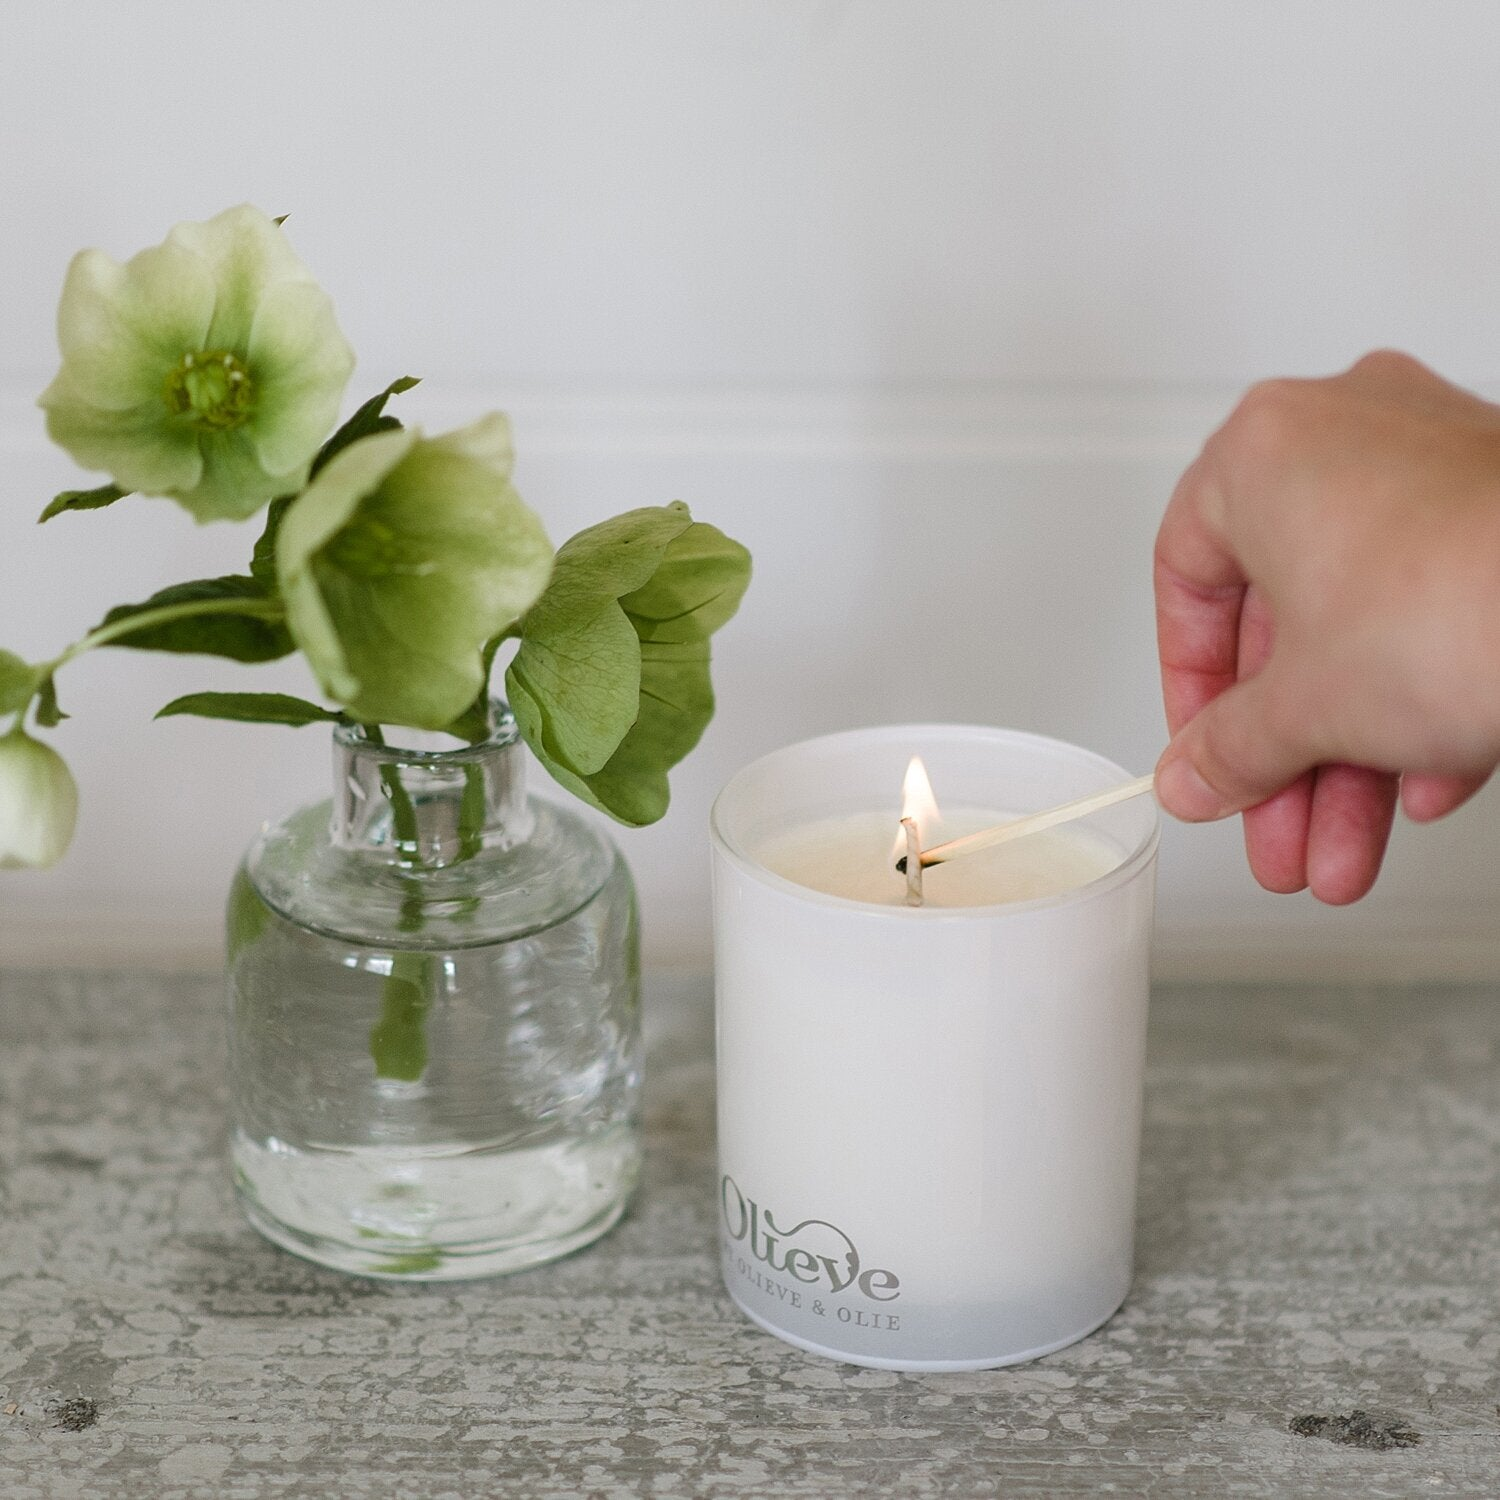 Olieve & Olie Soy & Olive Oil Candle